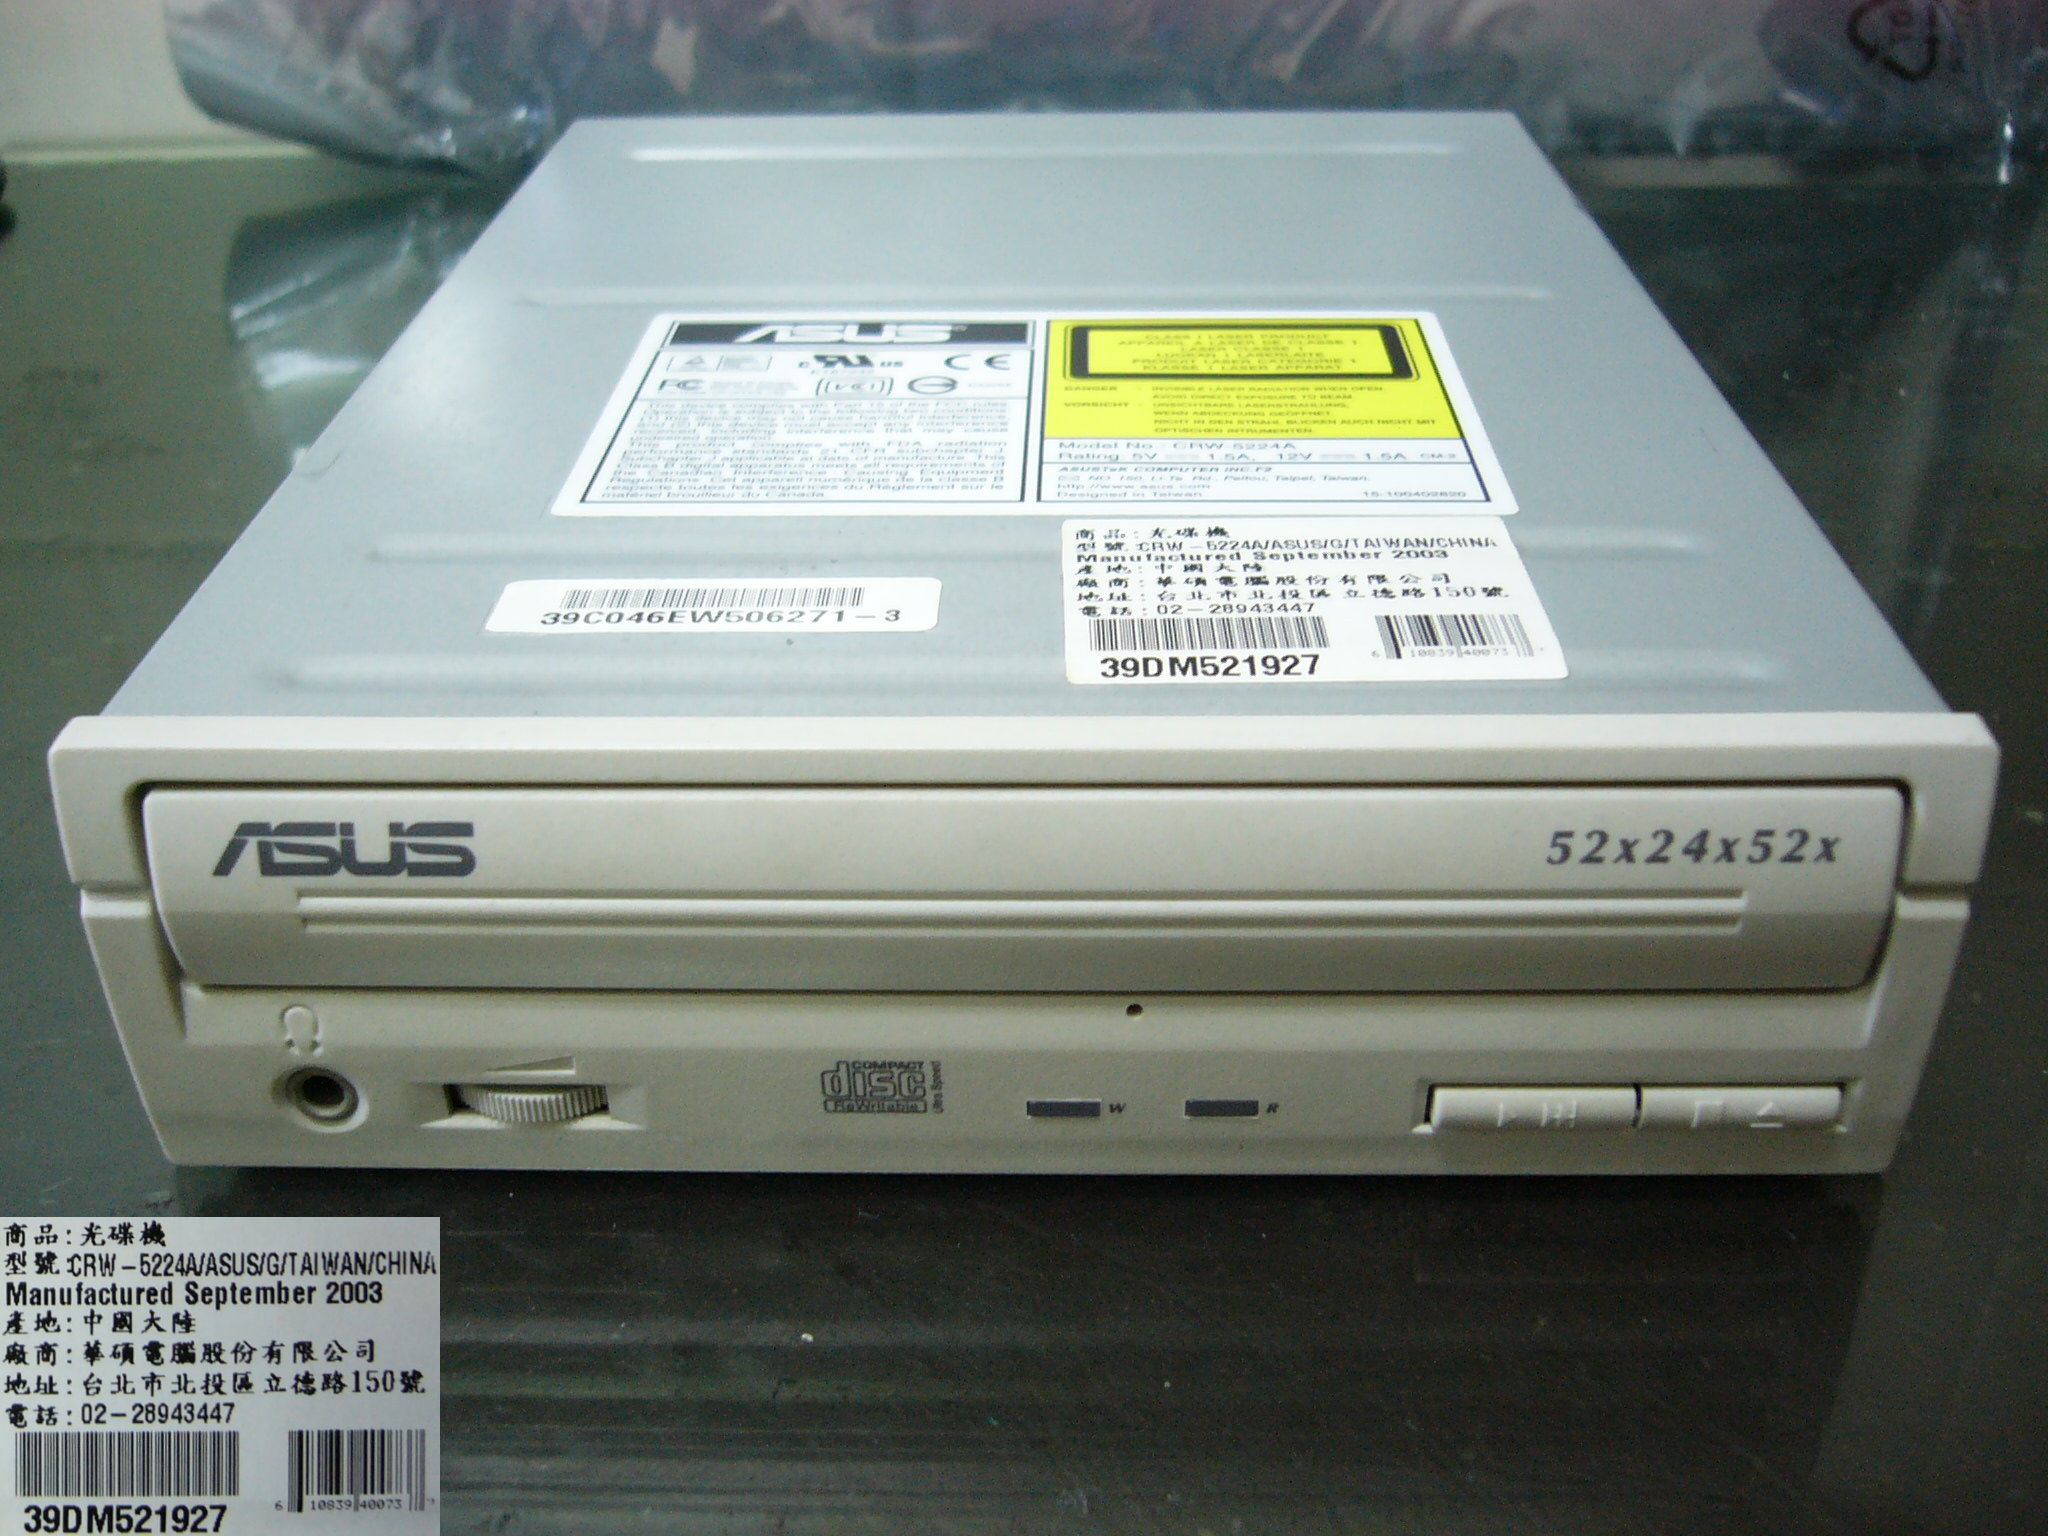 ASUS CRW-5224A WINDOWS 8 X64 DRIVER DOWNLOAD